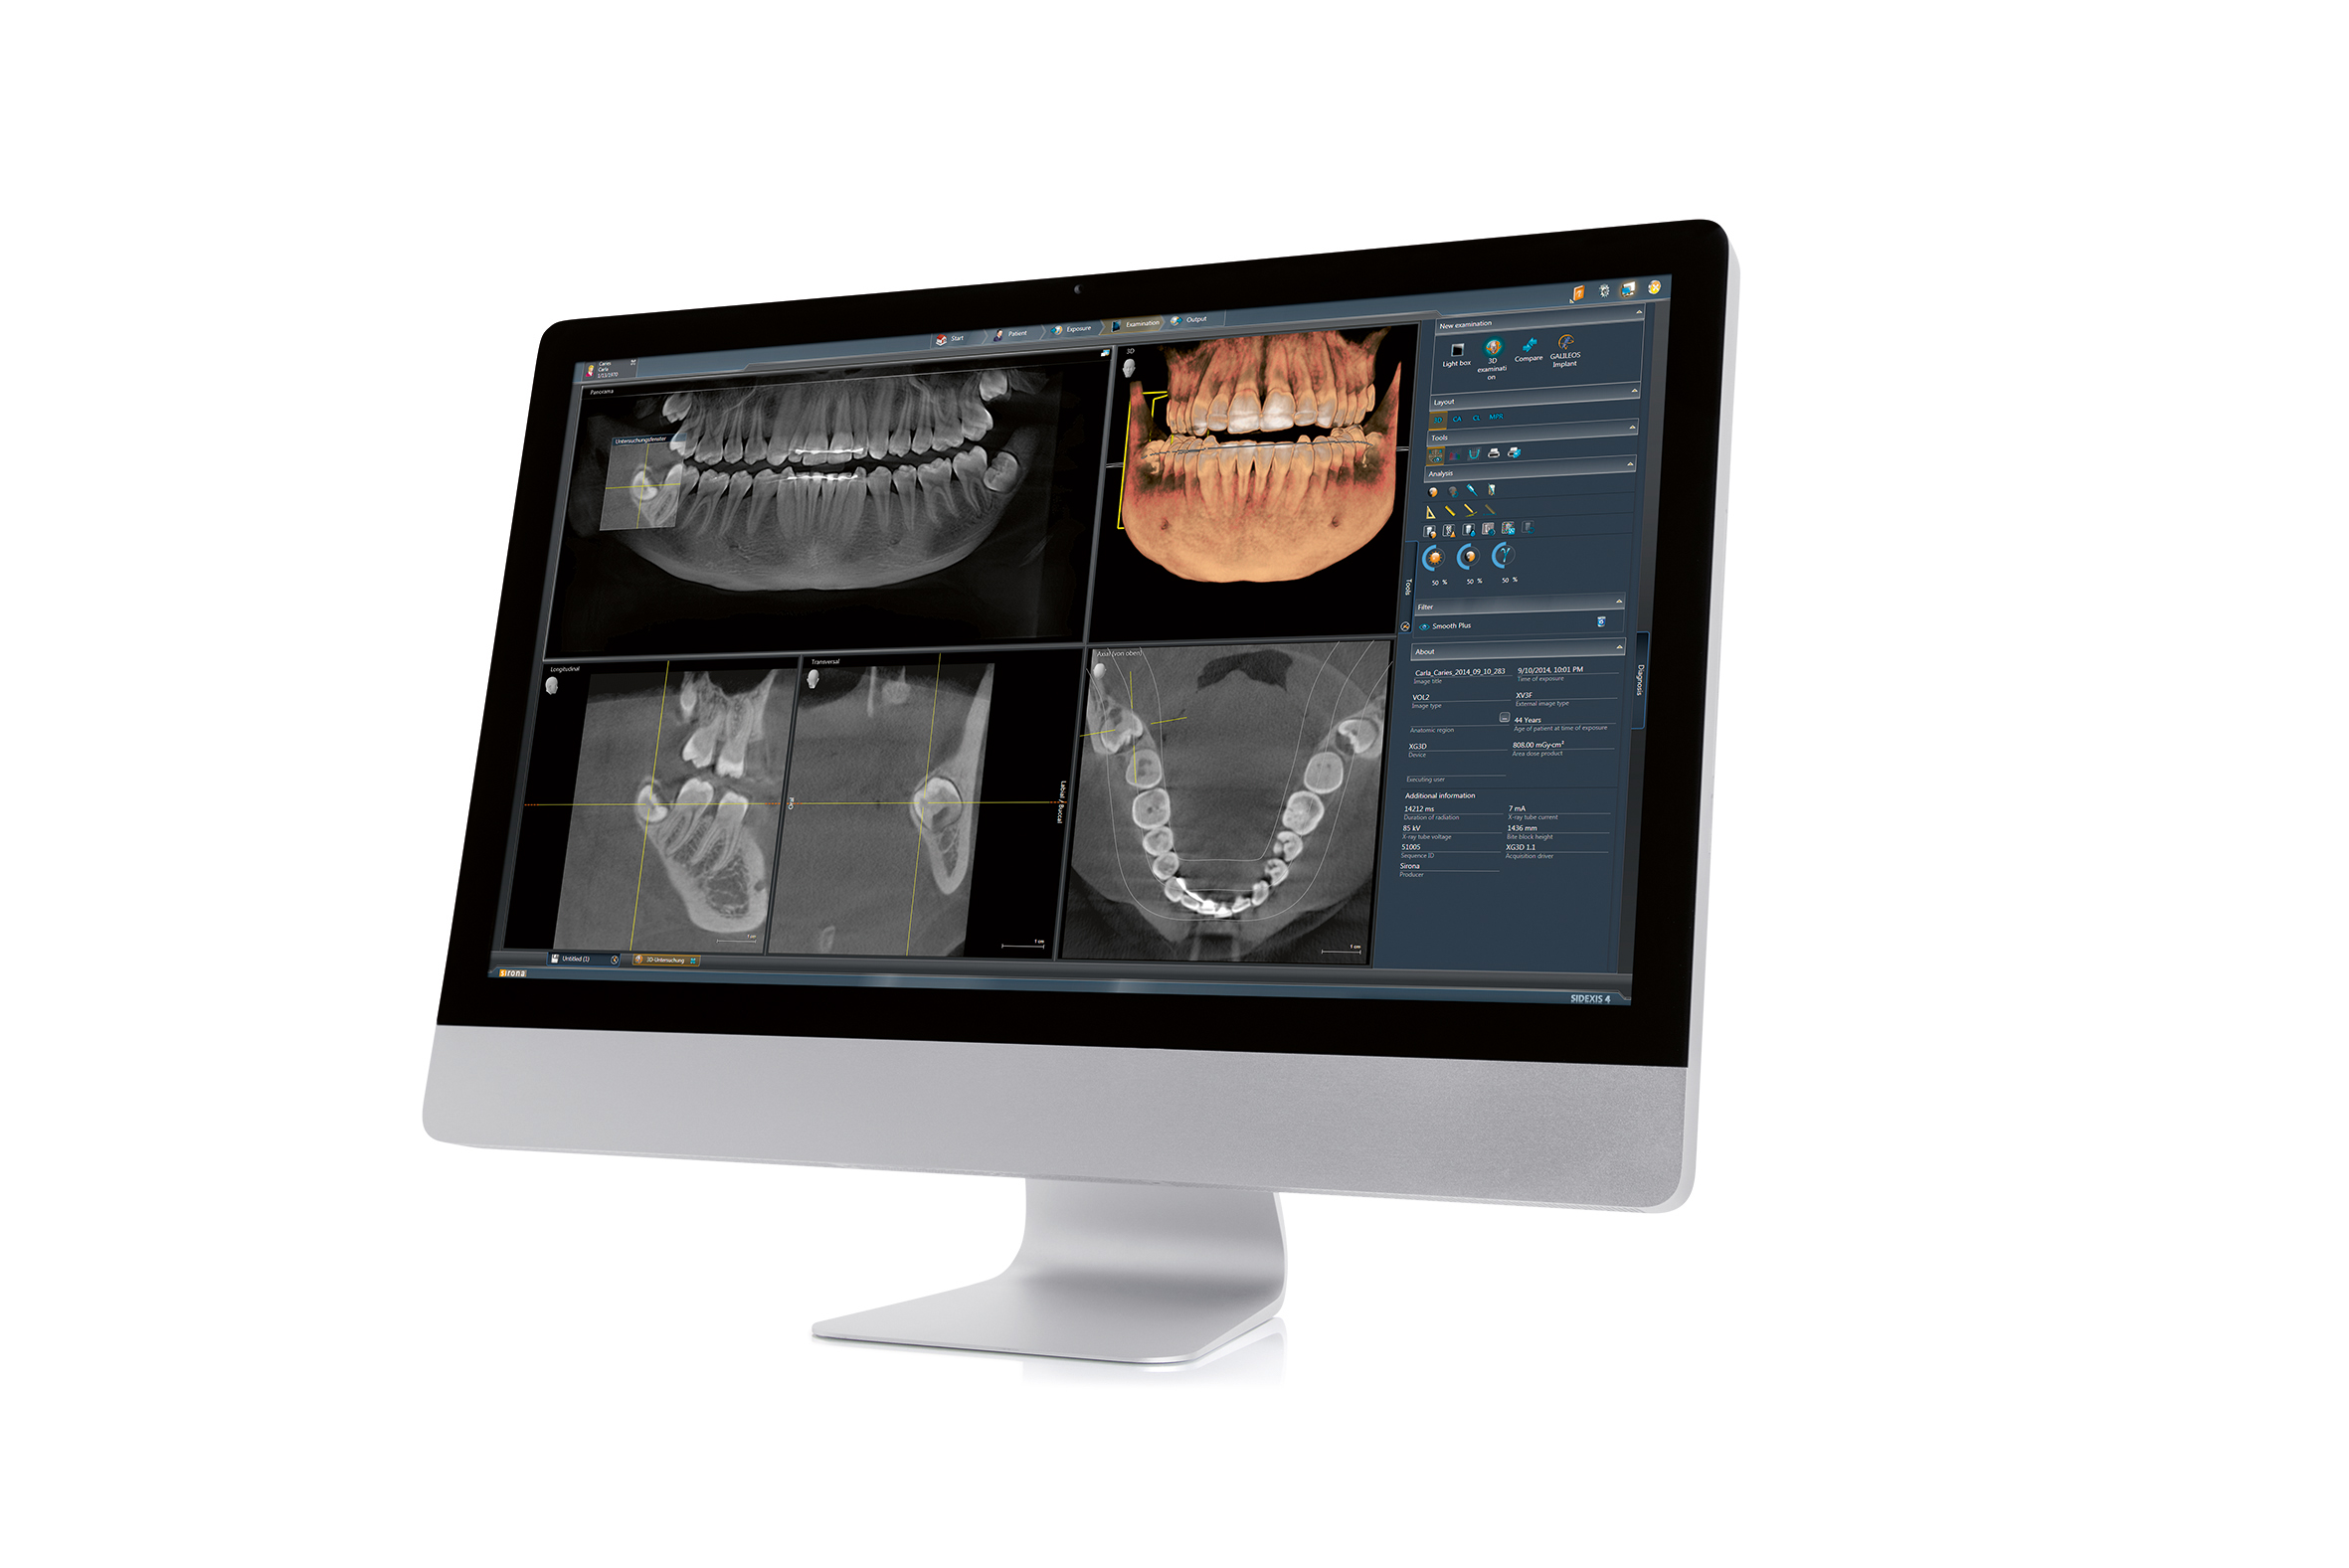 Sidexis software showing 3D X-ray files on screen of iMac